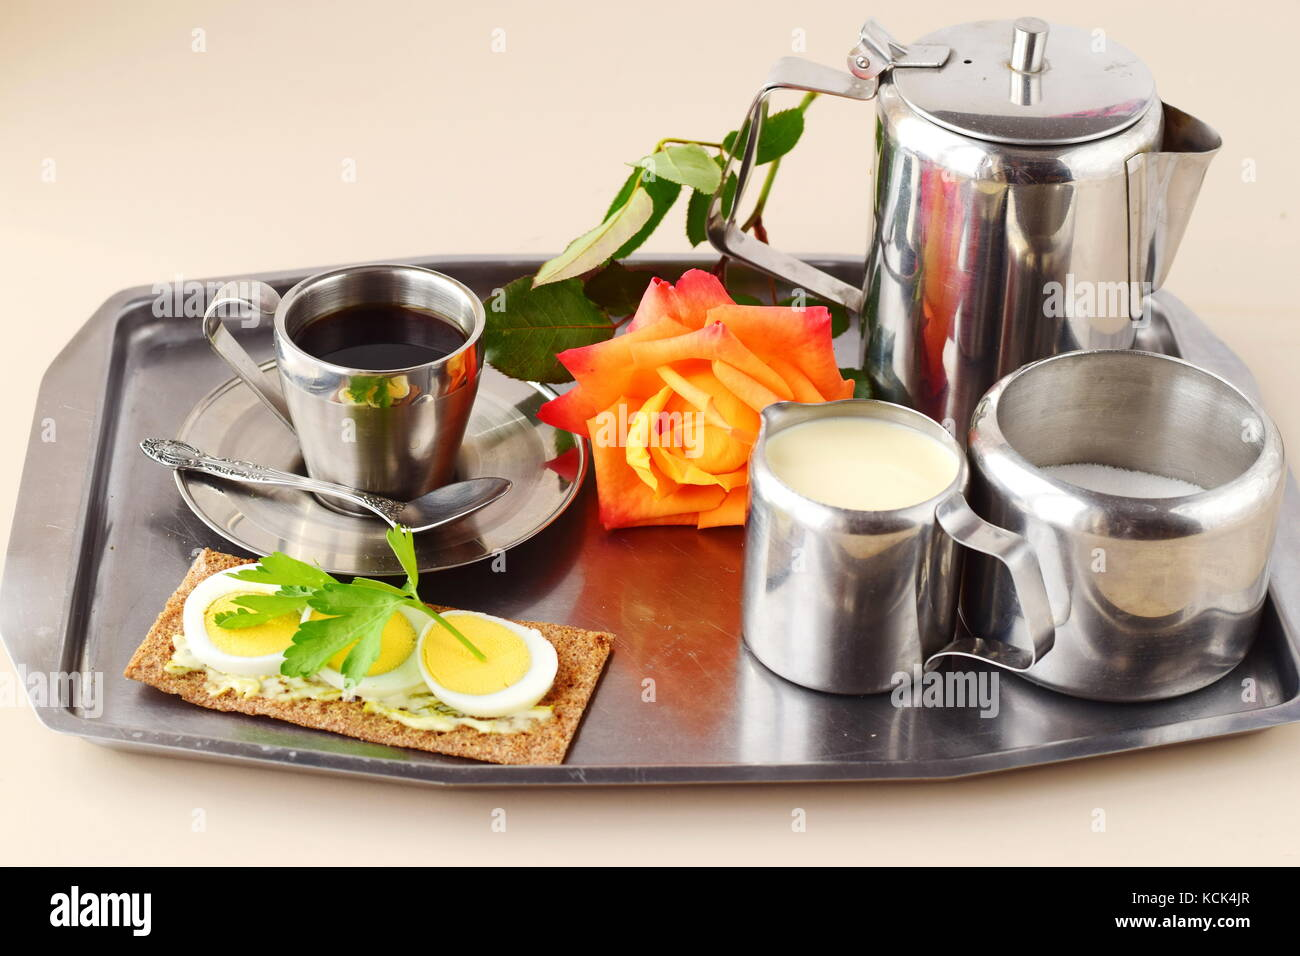 black coffee and eggs stockfotos black coffee and eggs bilder alamy. Black Bedroom Furniture Sets. Home Design Ideas